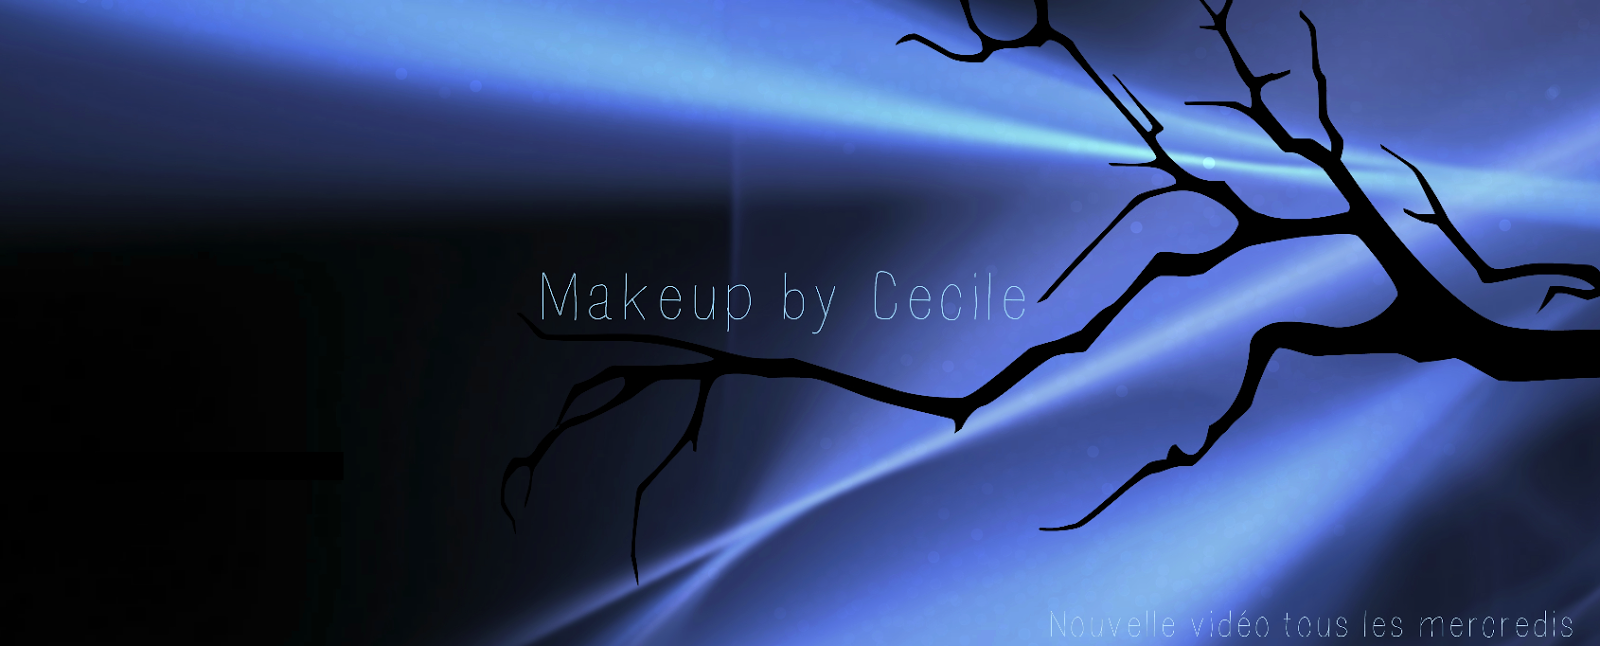 Makeup By Cecile